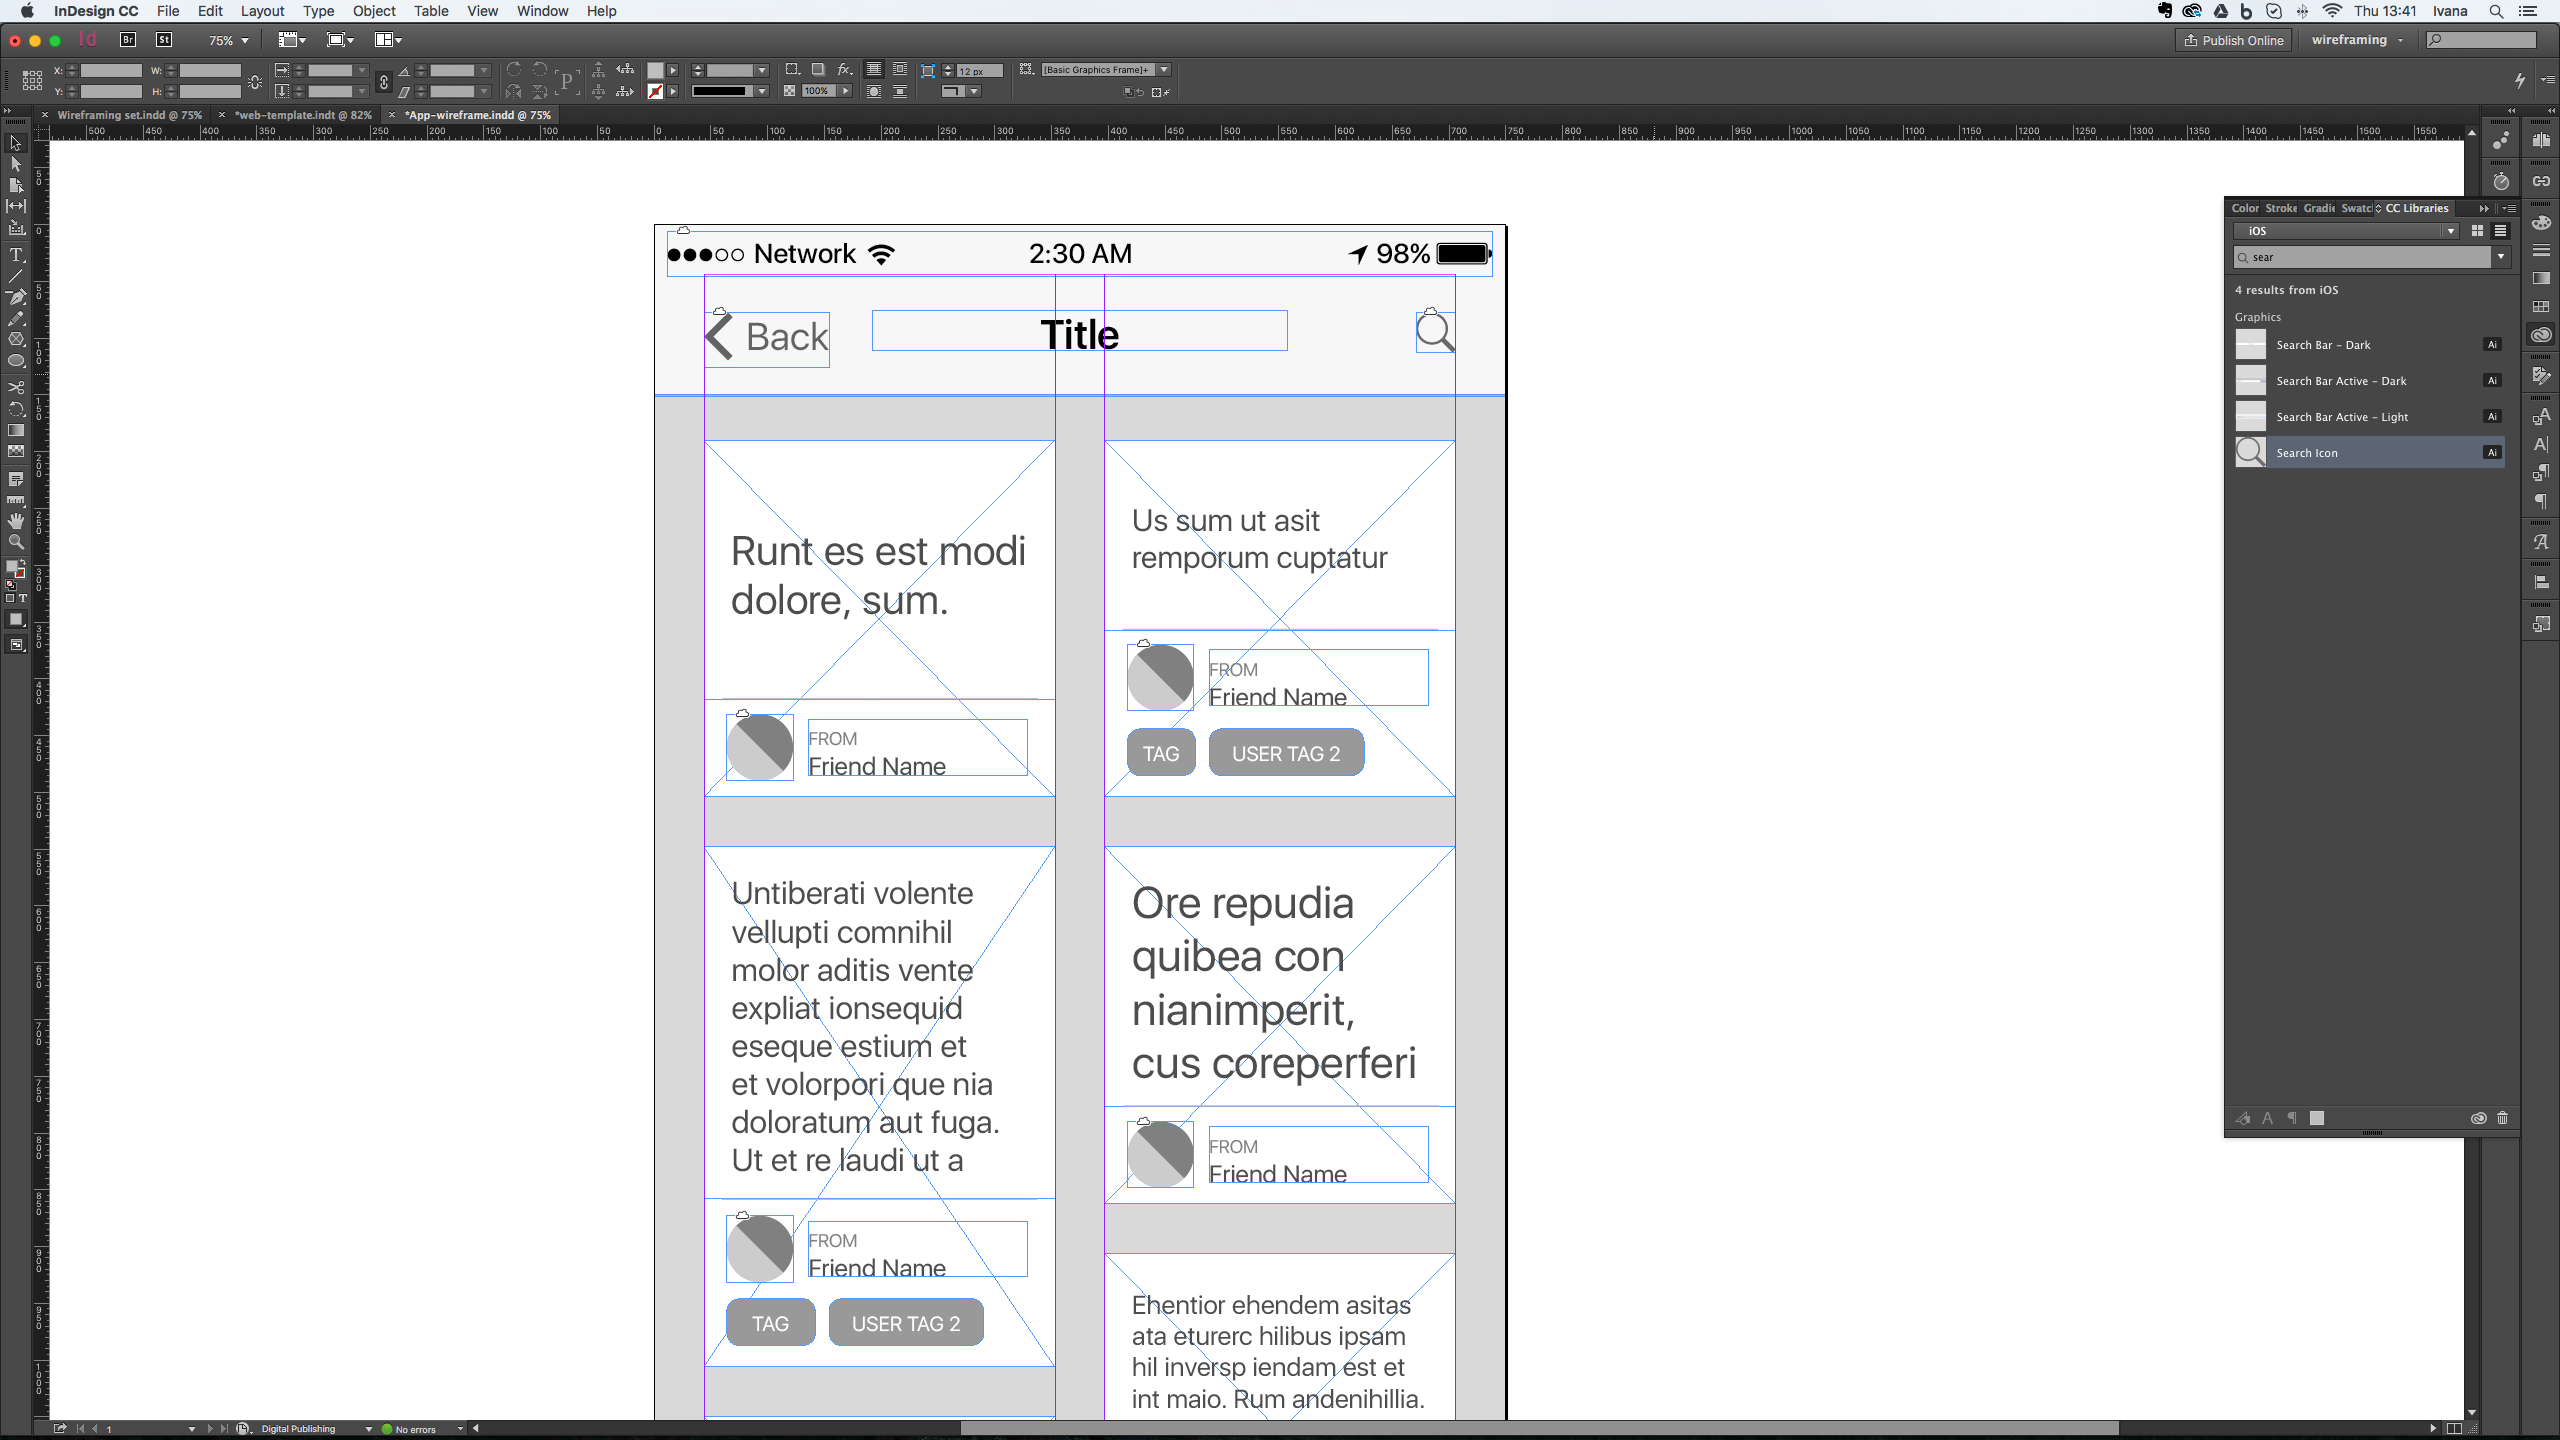 Who Knew Adobe CC Could Wireframe? - Image 9